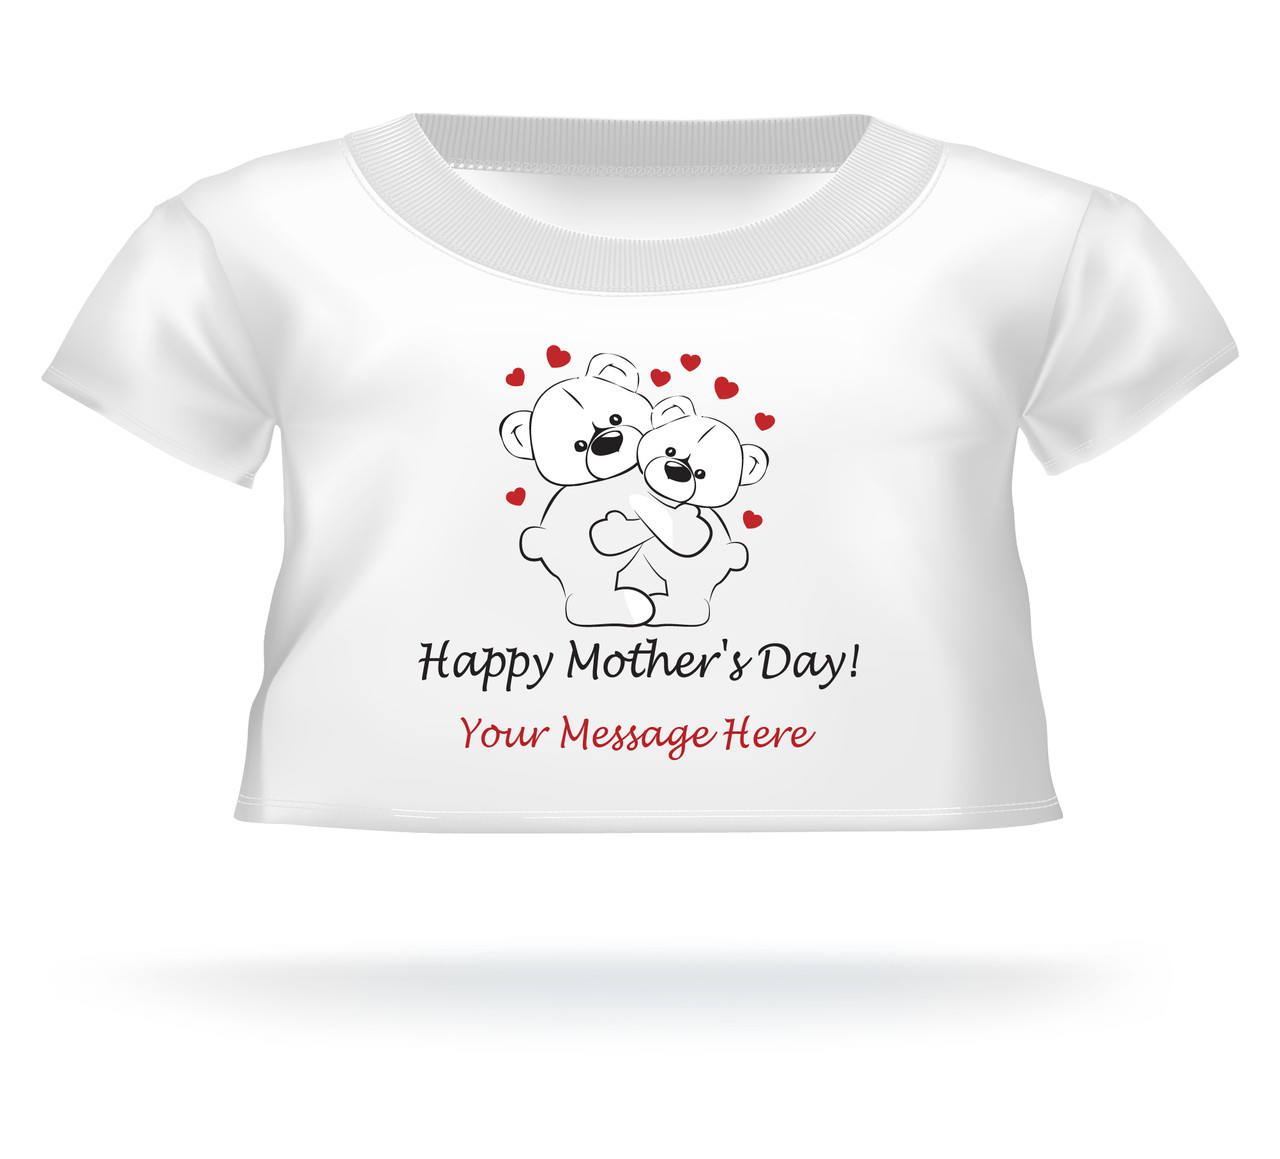 5d296053 Happy Mother's Day gift Personalized Life Size Giant Teddy Bear